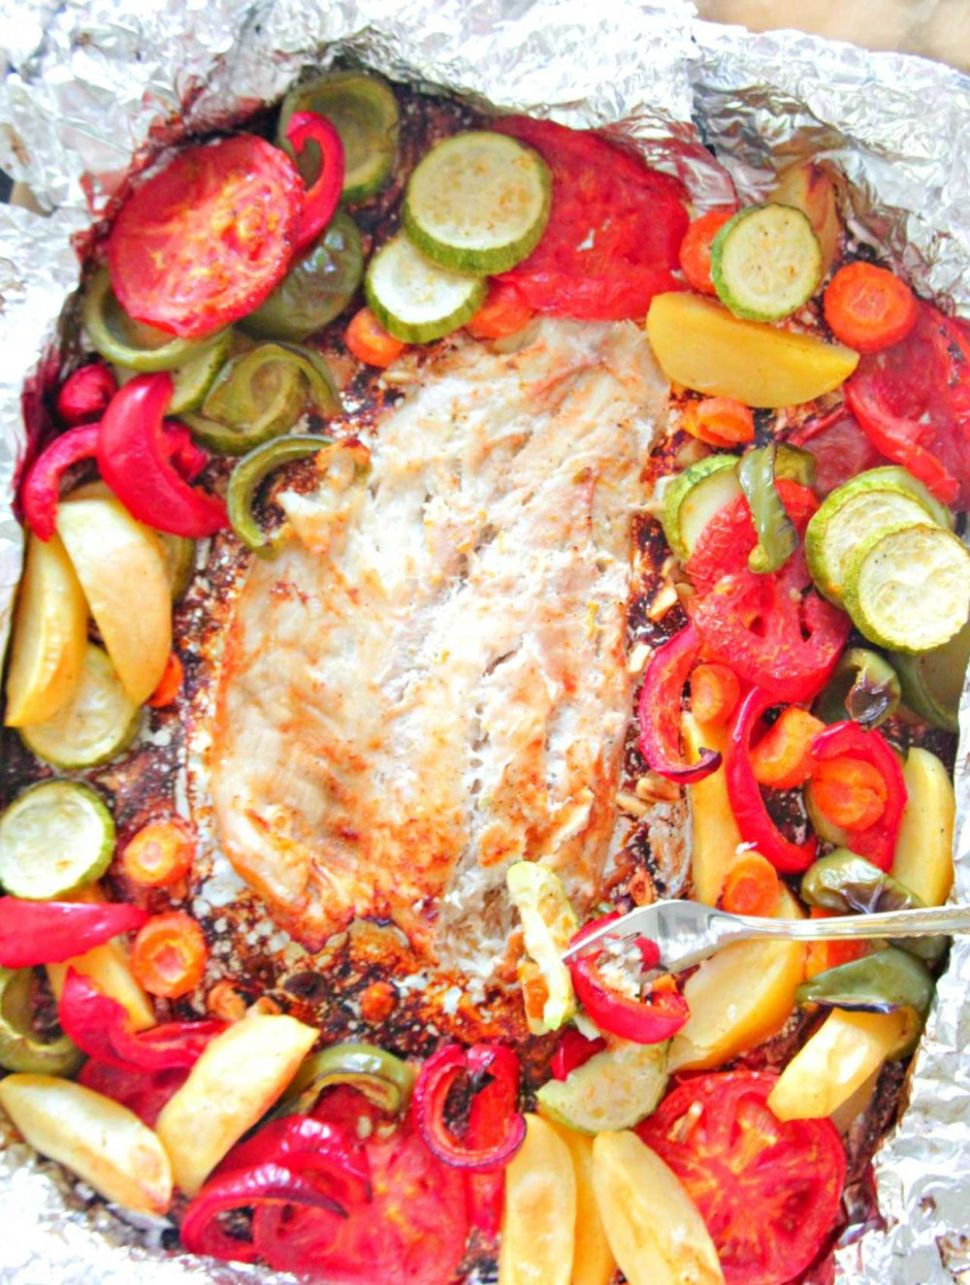 Baked Fish In Foil With Vegetables - Recipes Fish In The Oven